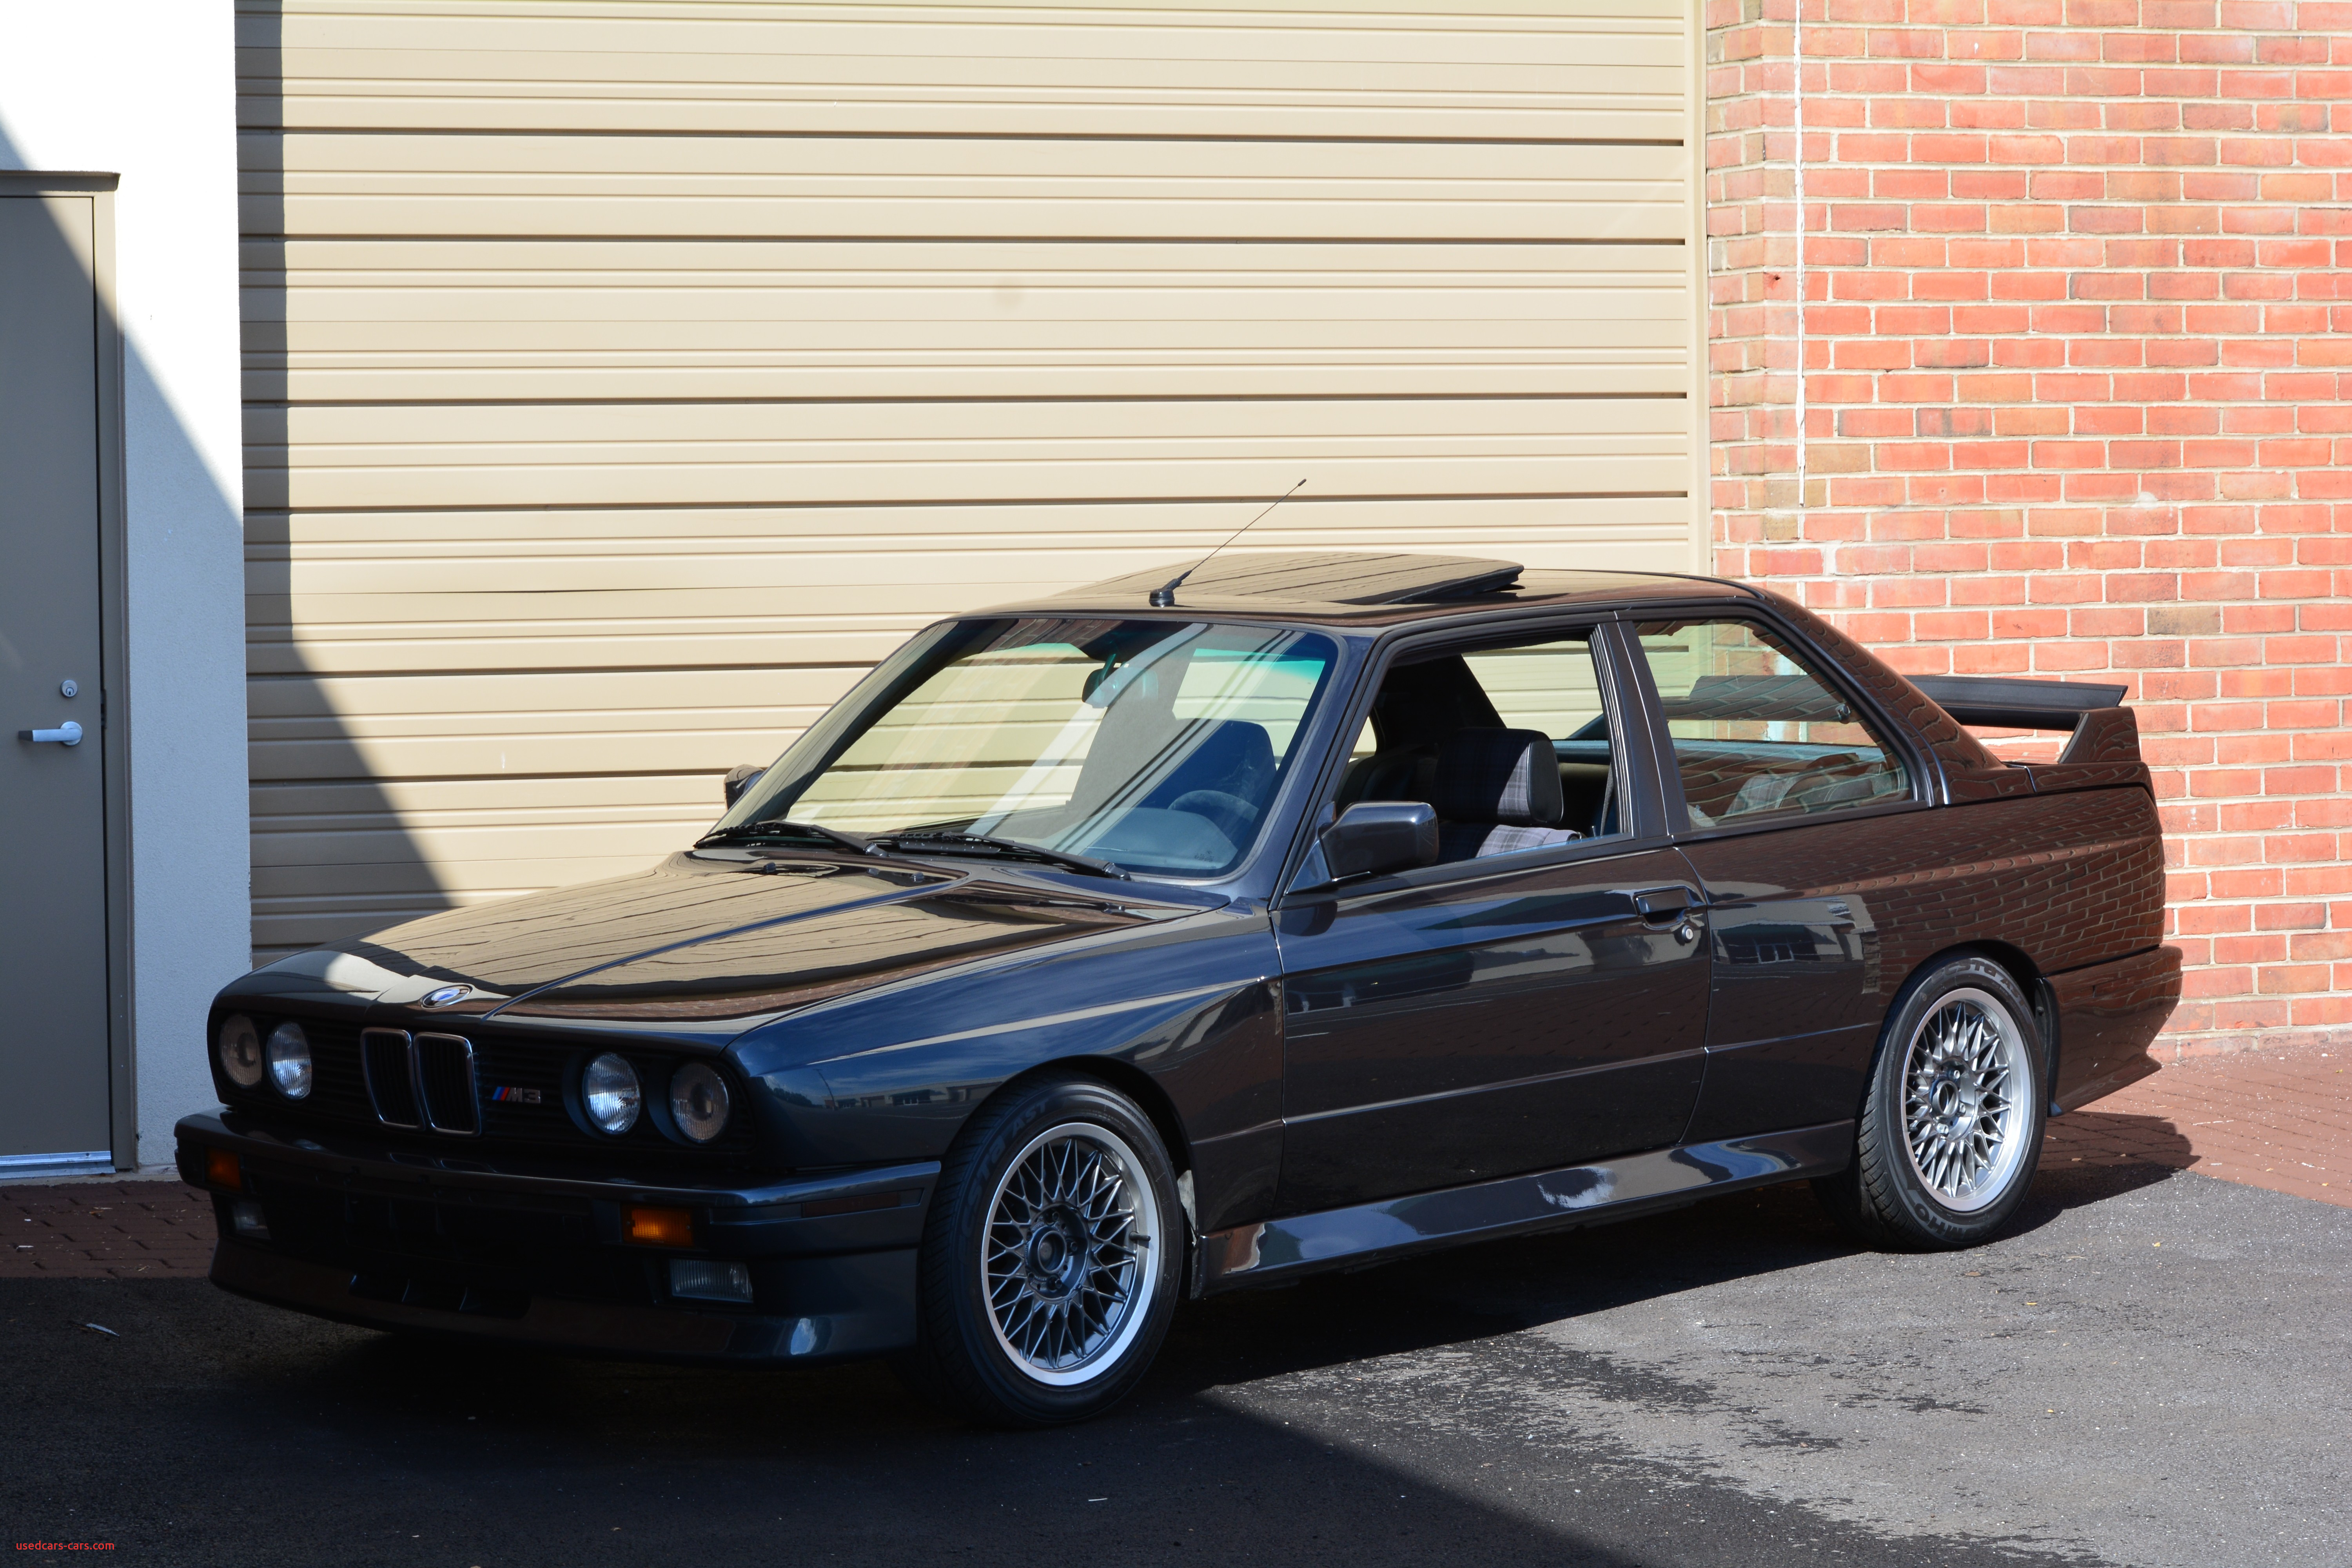 Bmw M3 1988 Awesome 1988 Bmw E30 M3 Seller Wants Just $29 000 for His Mint Car